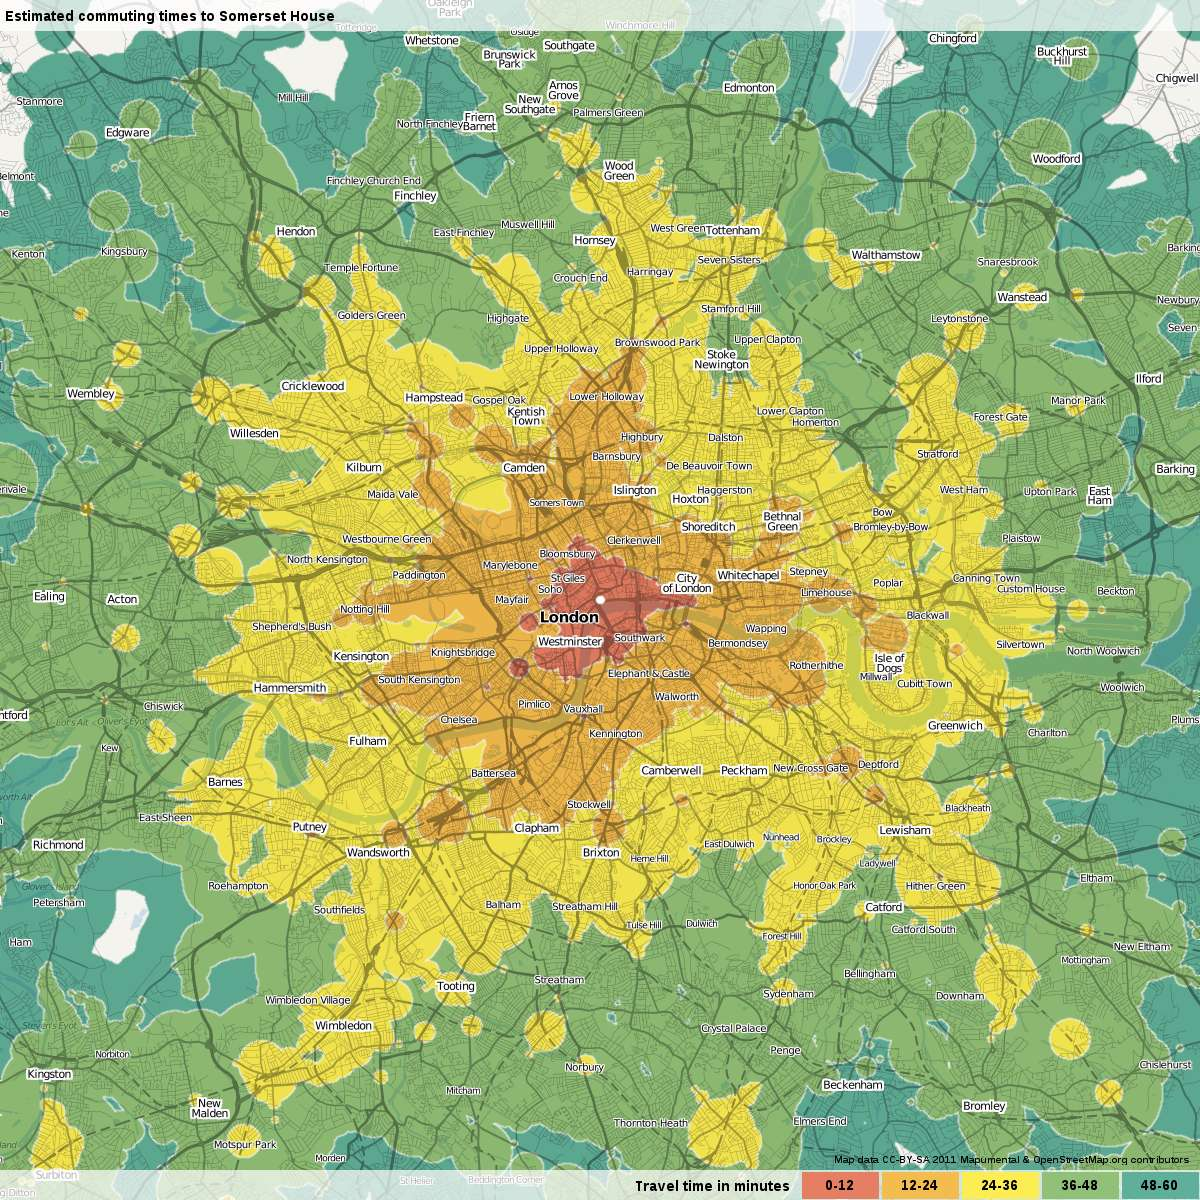 Map of travel times to Somerset House in London from surrounding area.